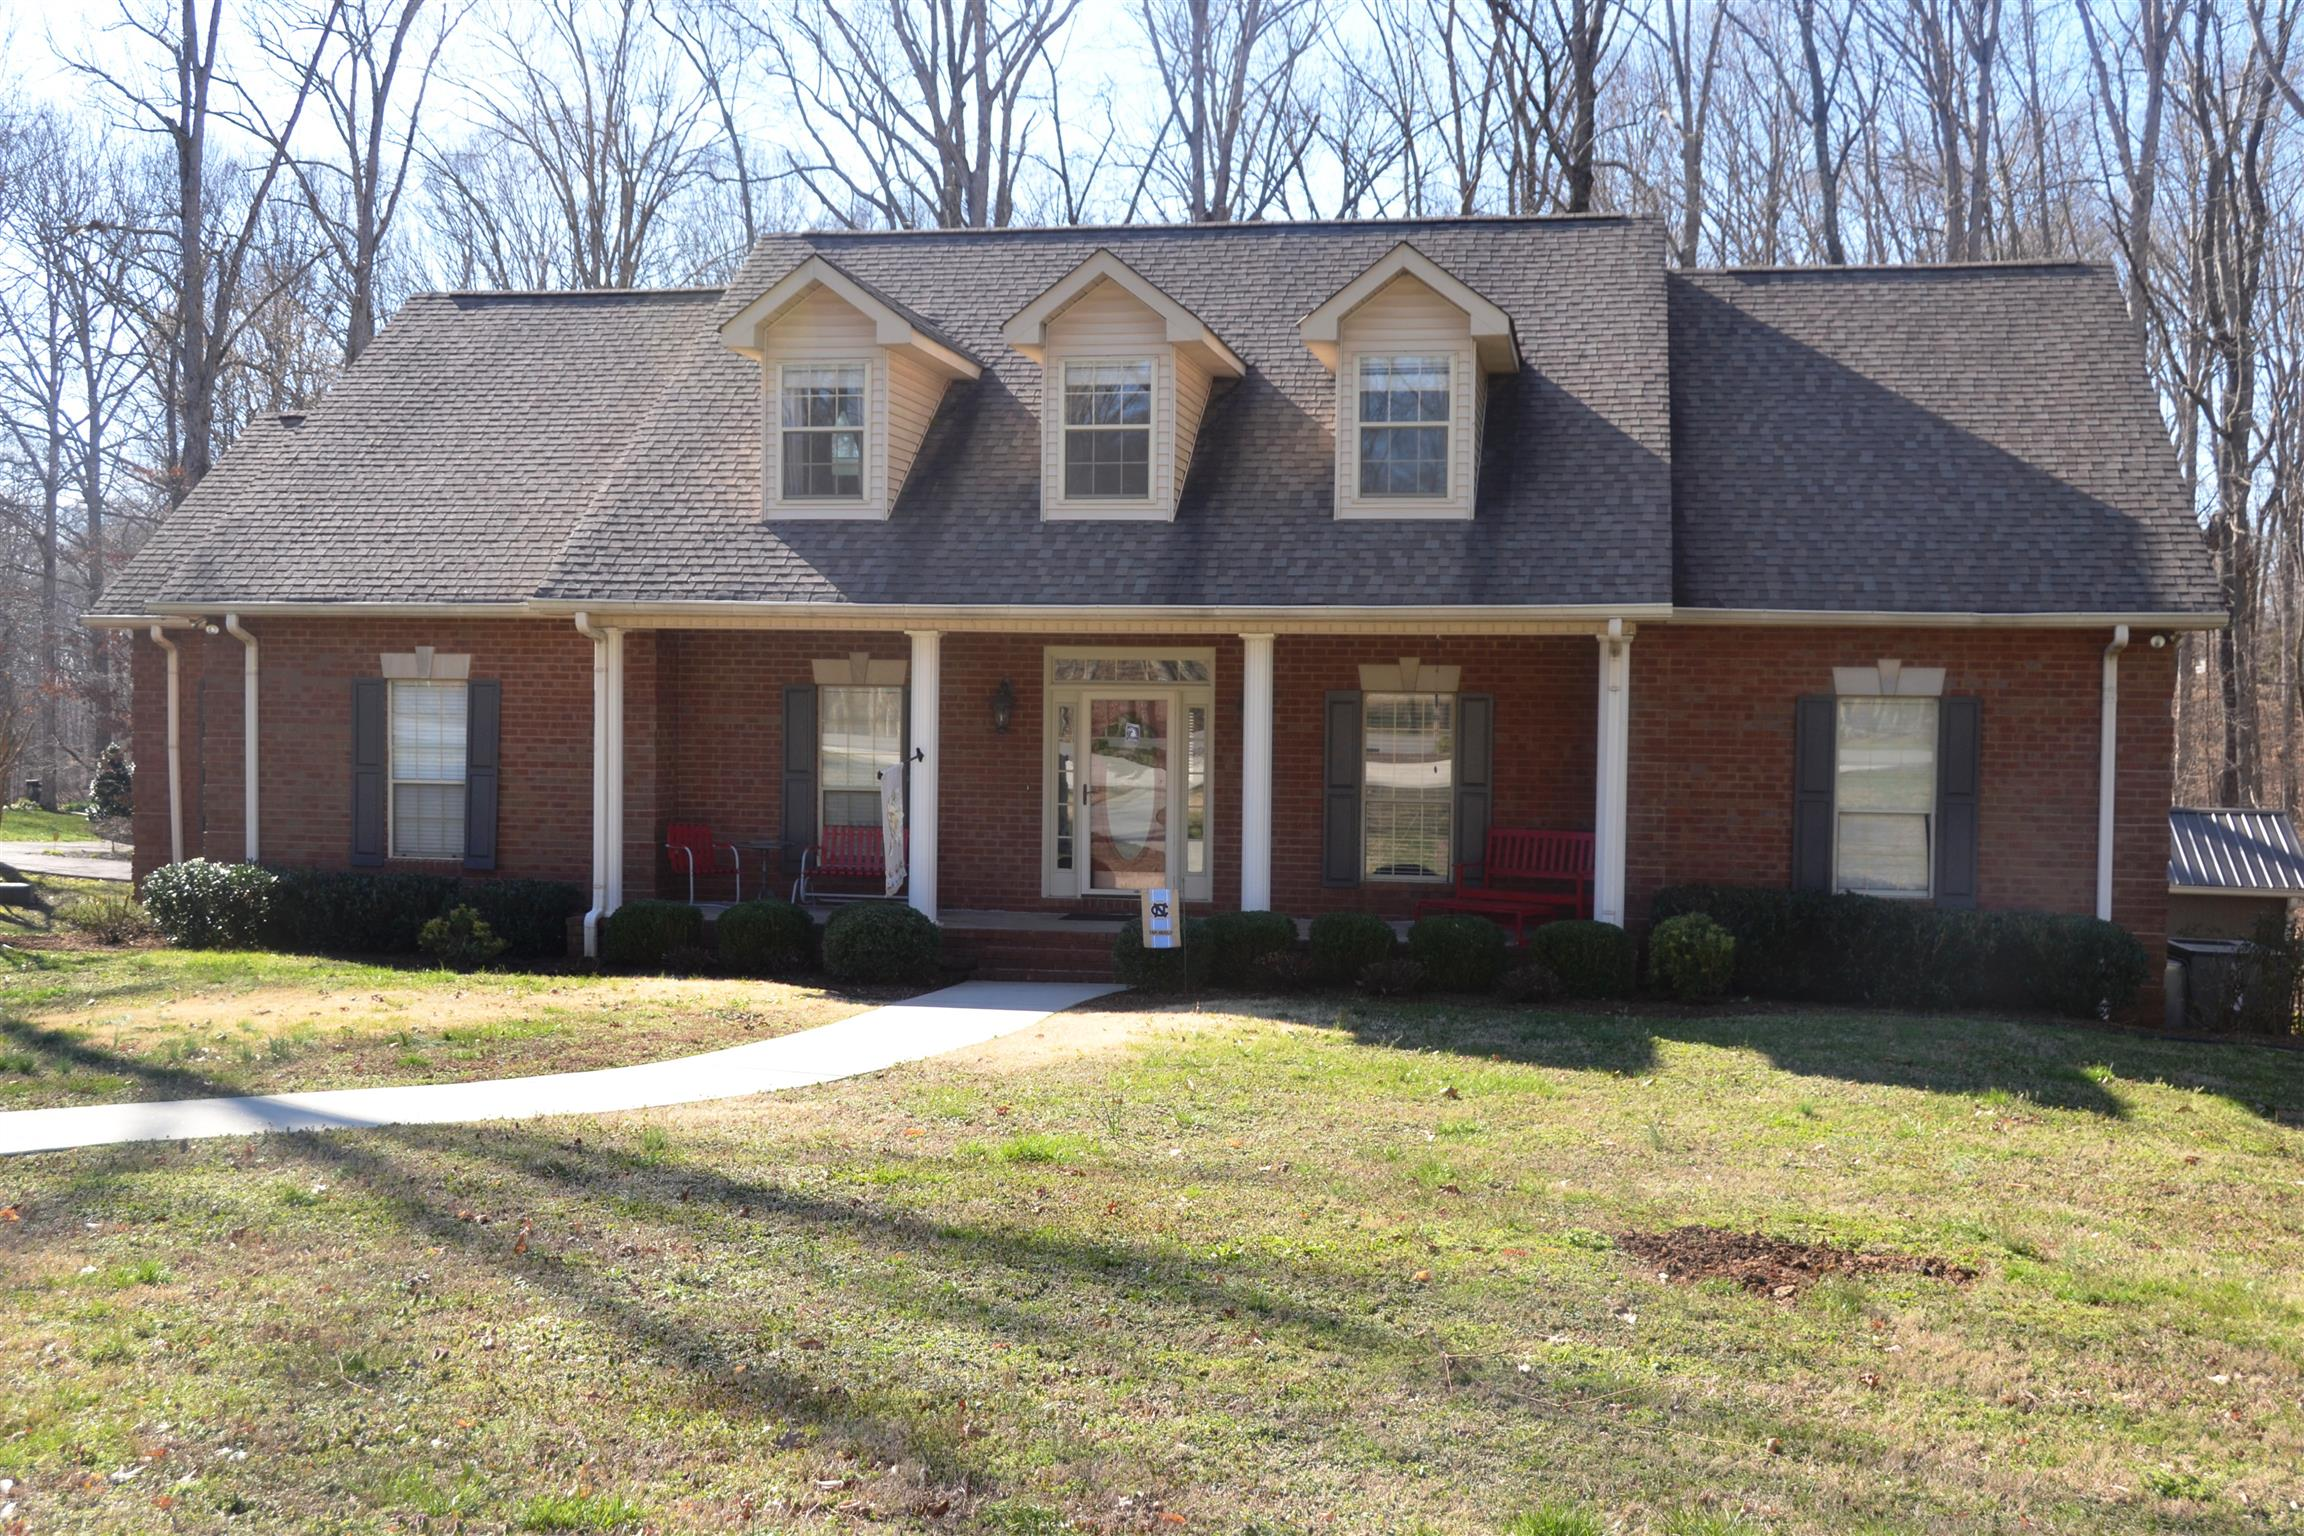 584 Hickory Blvd, McMinnville, TN 37110 - McMinnville, TN real estate listing